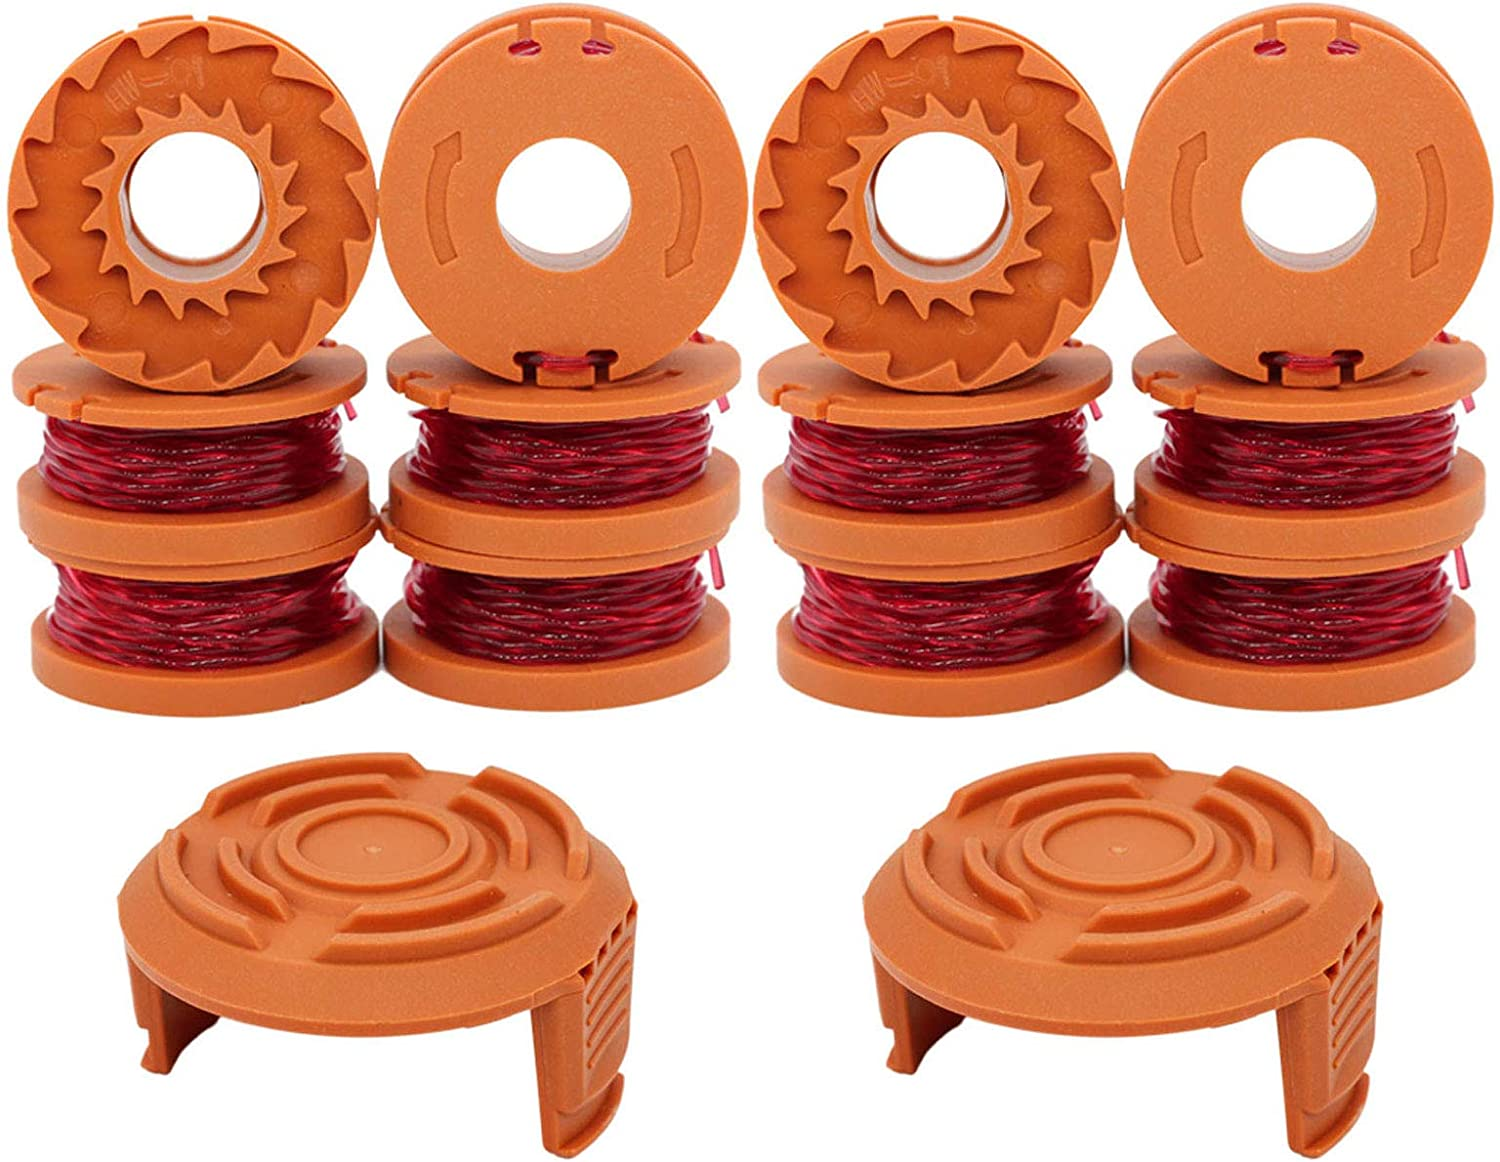 """RONGJU 12-Pack Replacement Trimmer Spool Line for Worx WA0010 WG180 WG163 WG175 Electric Trimmer/Edger Weed Eater Line 10ft 0.065 """"+ 2 Pack Spool Cap Covers (12 Spools, 2 Caps) : Garden & Outdoor"""